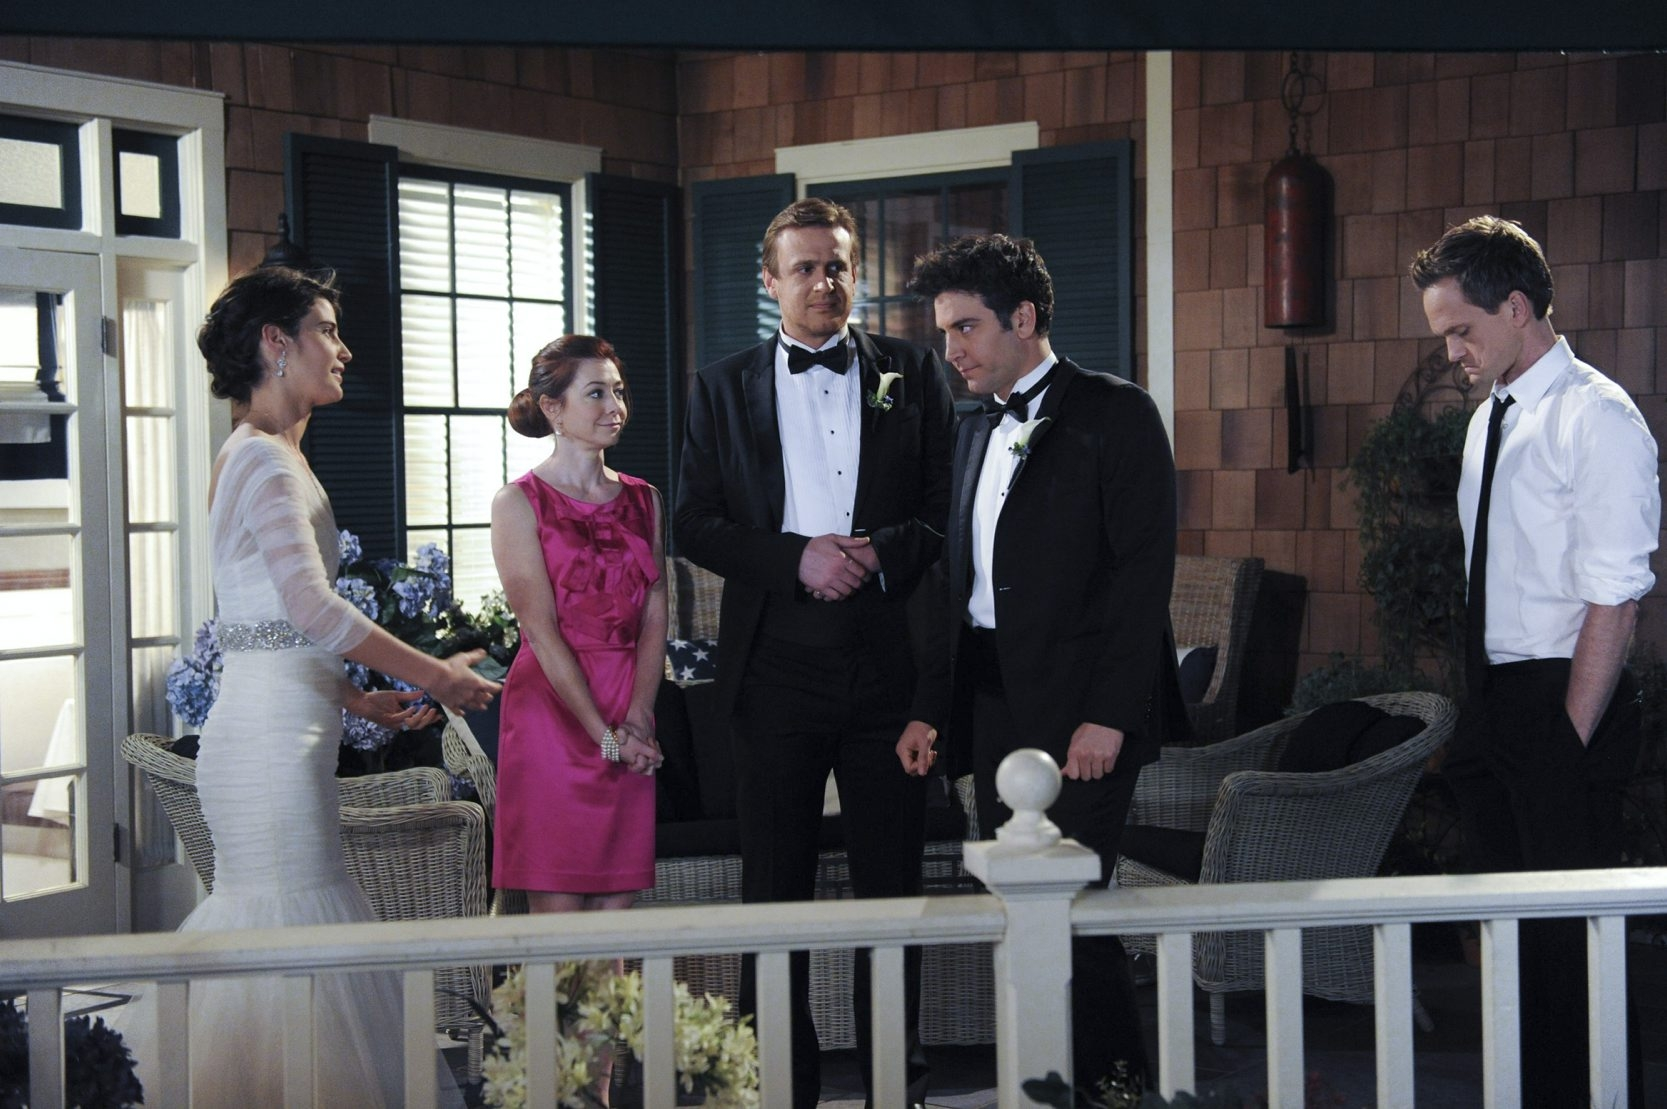 """The """"How I Met Your Mother"""" cast members, from left, Cobie Smulders as Robin, Alyson Hannigan as Lily, Jason Segel as Marshall, Josh Radnor as Ted and Neil Patrick Harris as Barney clicked from the beginning, nine years ago."""